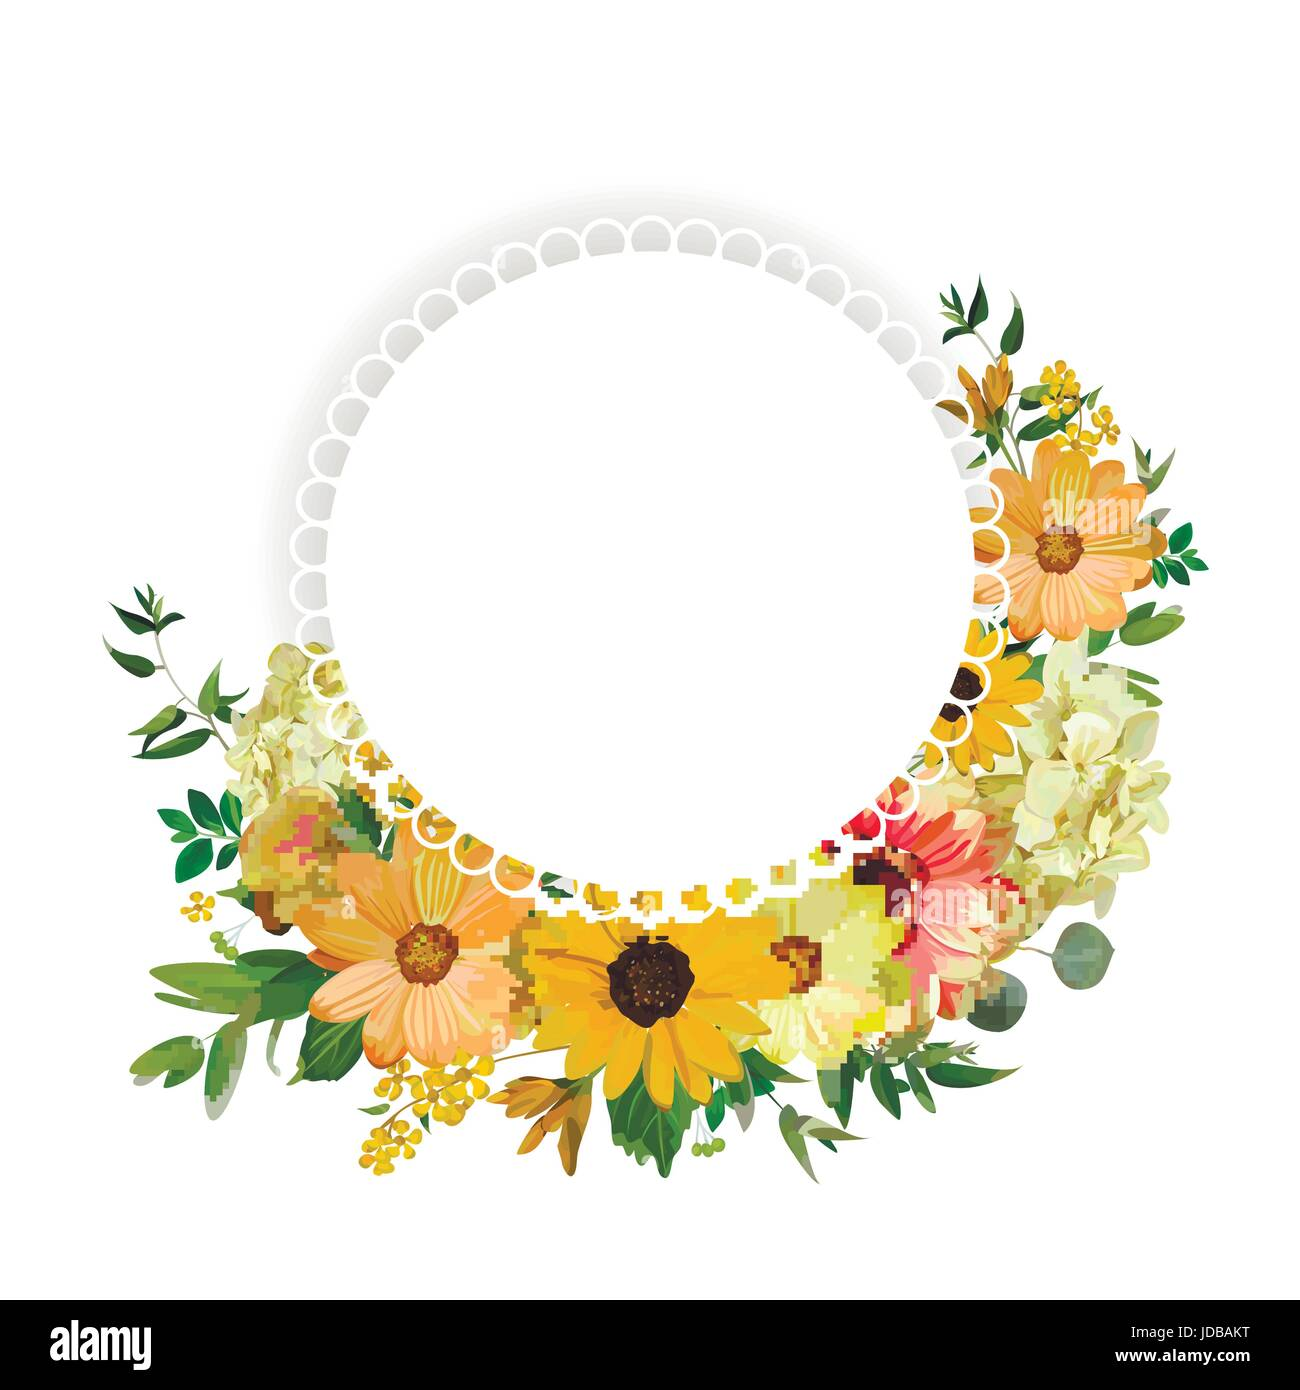 Attractive Flower circle round wreath flowers yellow orange Dahlia Sunflower  HY24